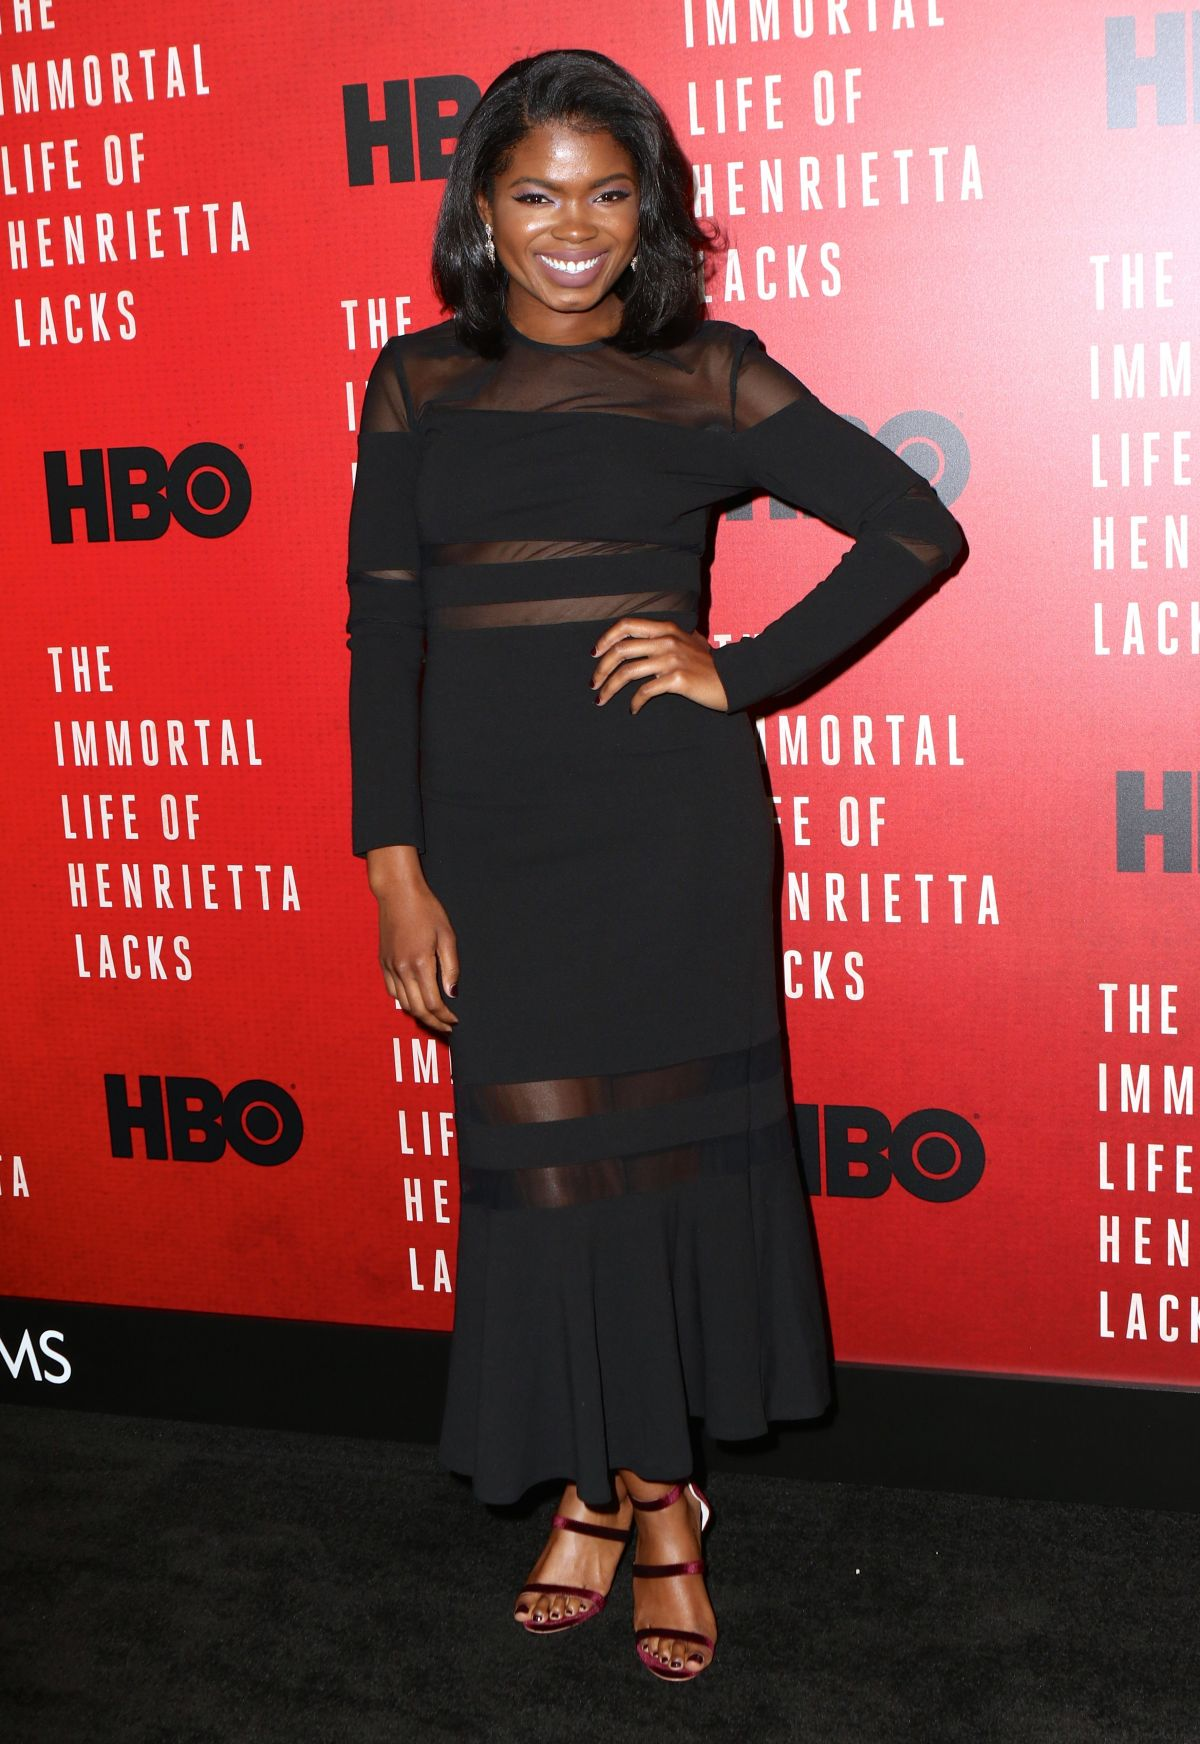 KYANNA SIMONE at The Immortal Life of Henrietta Lacks Screening in New York 04/18/2017